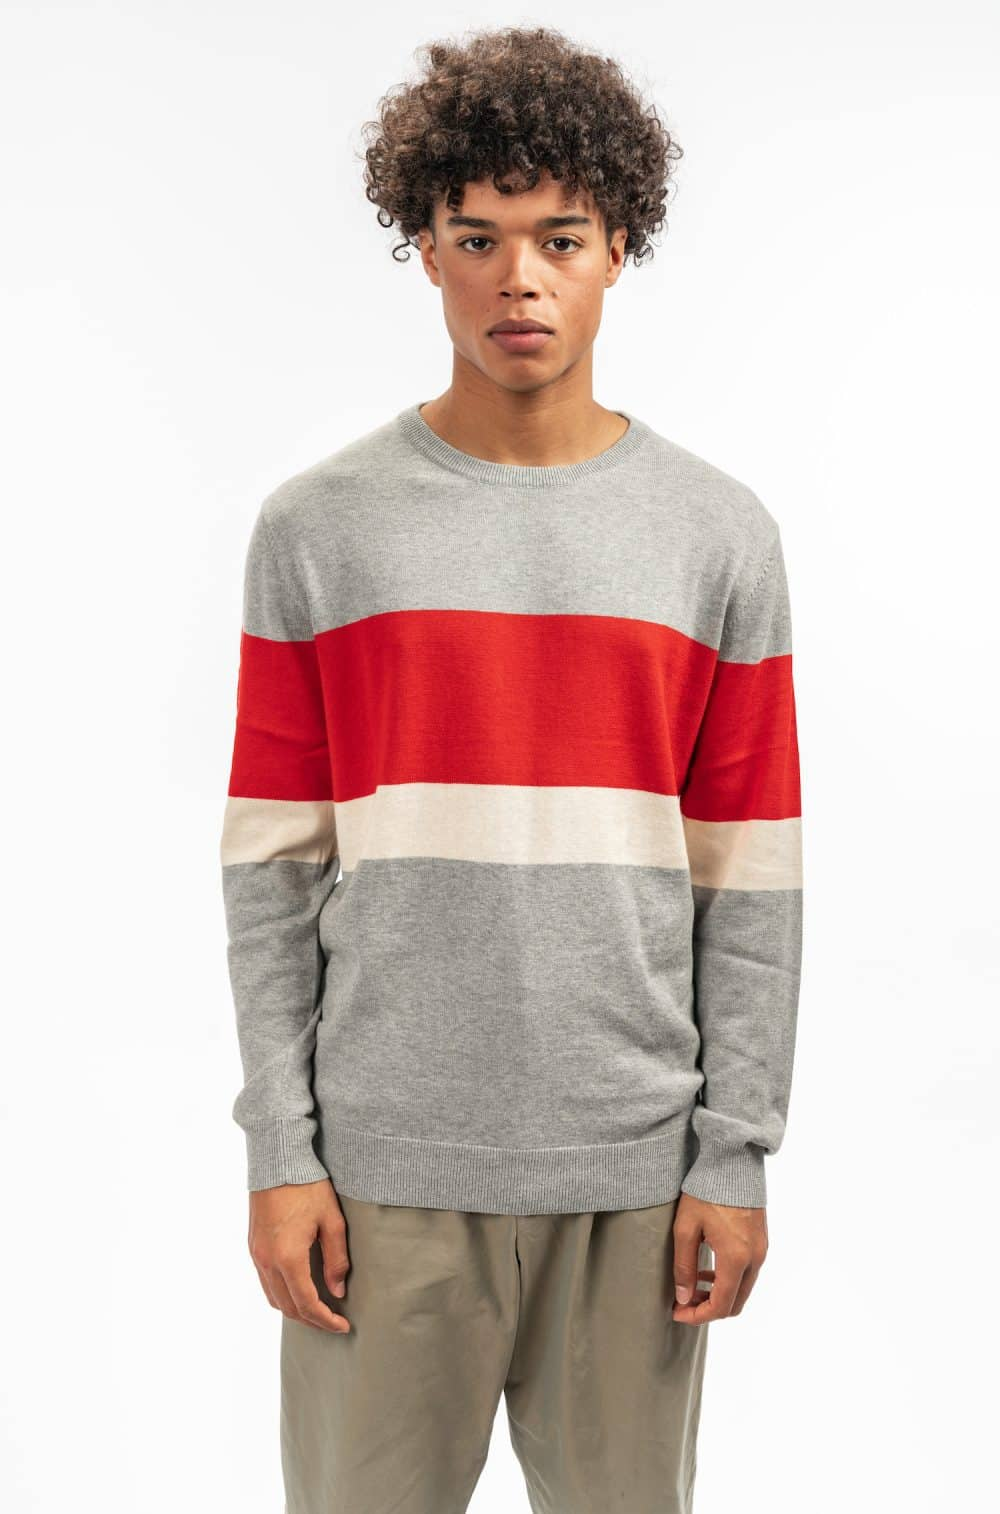 Castart Fieldston grey red beige colour block Knitwear SS19 Colorful & qualitative Castart knitwear - shop castart men's clothing